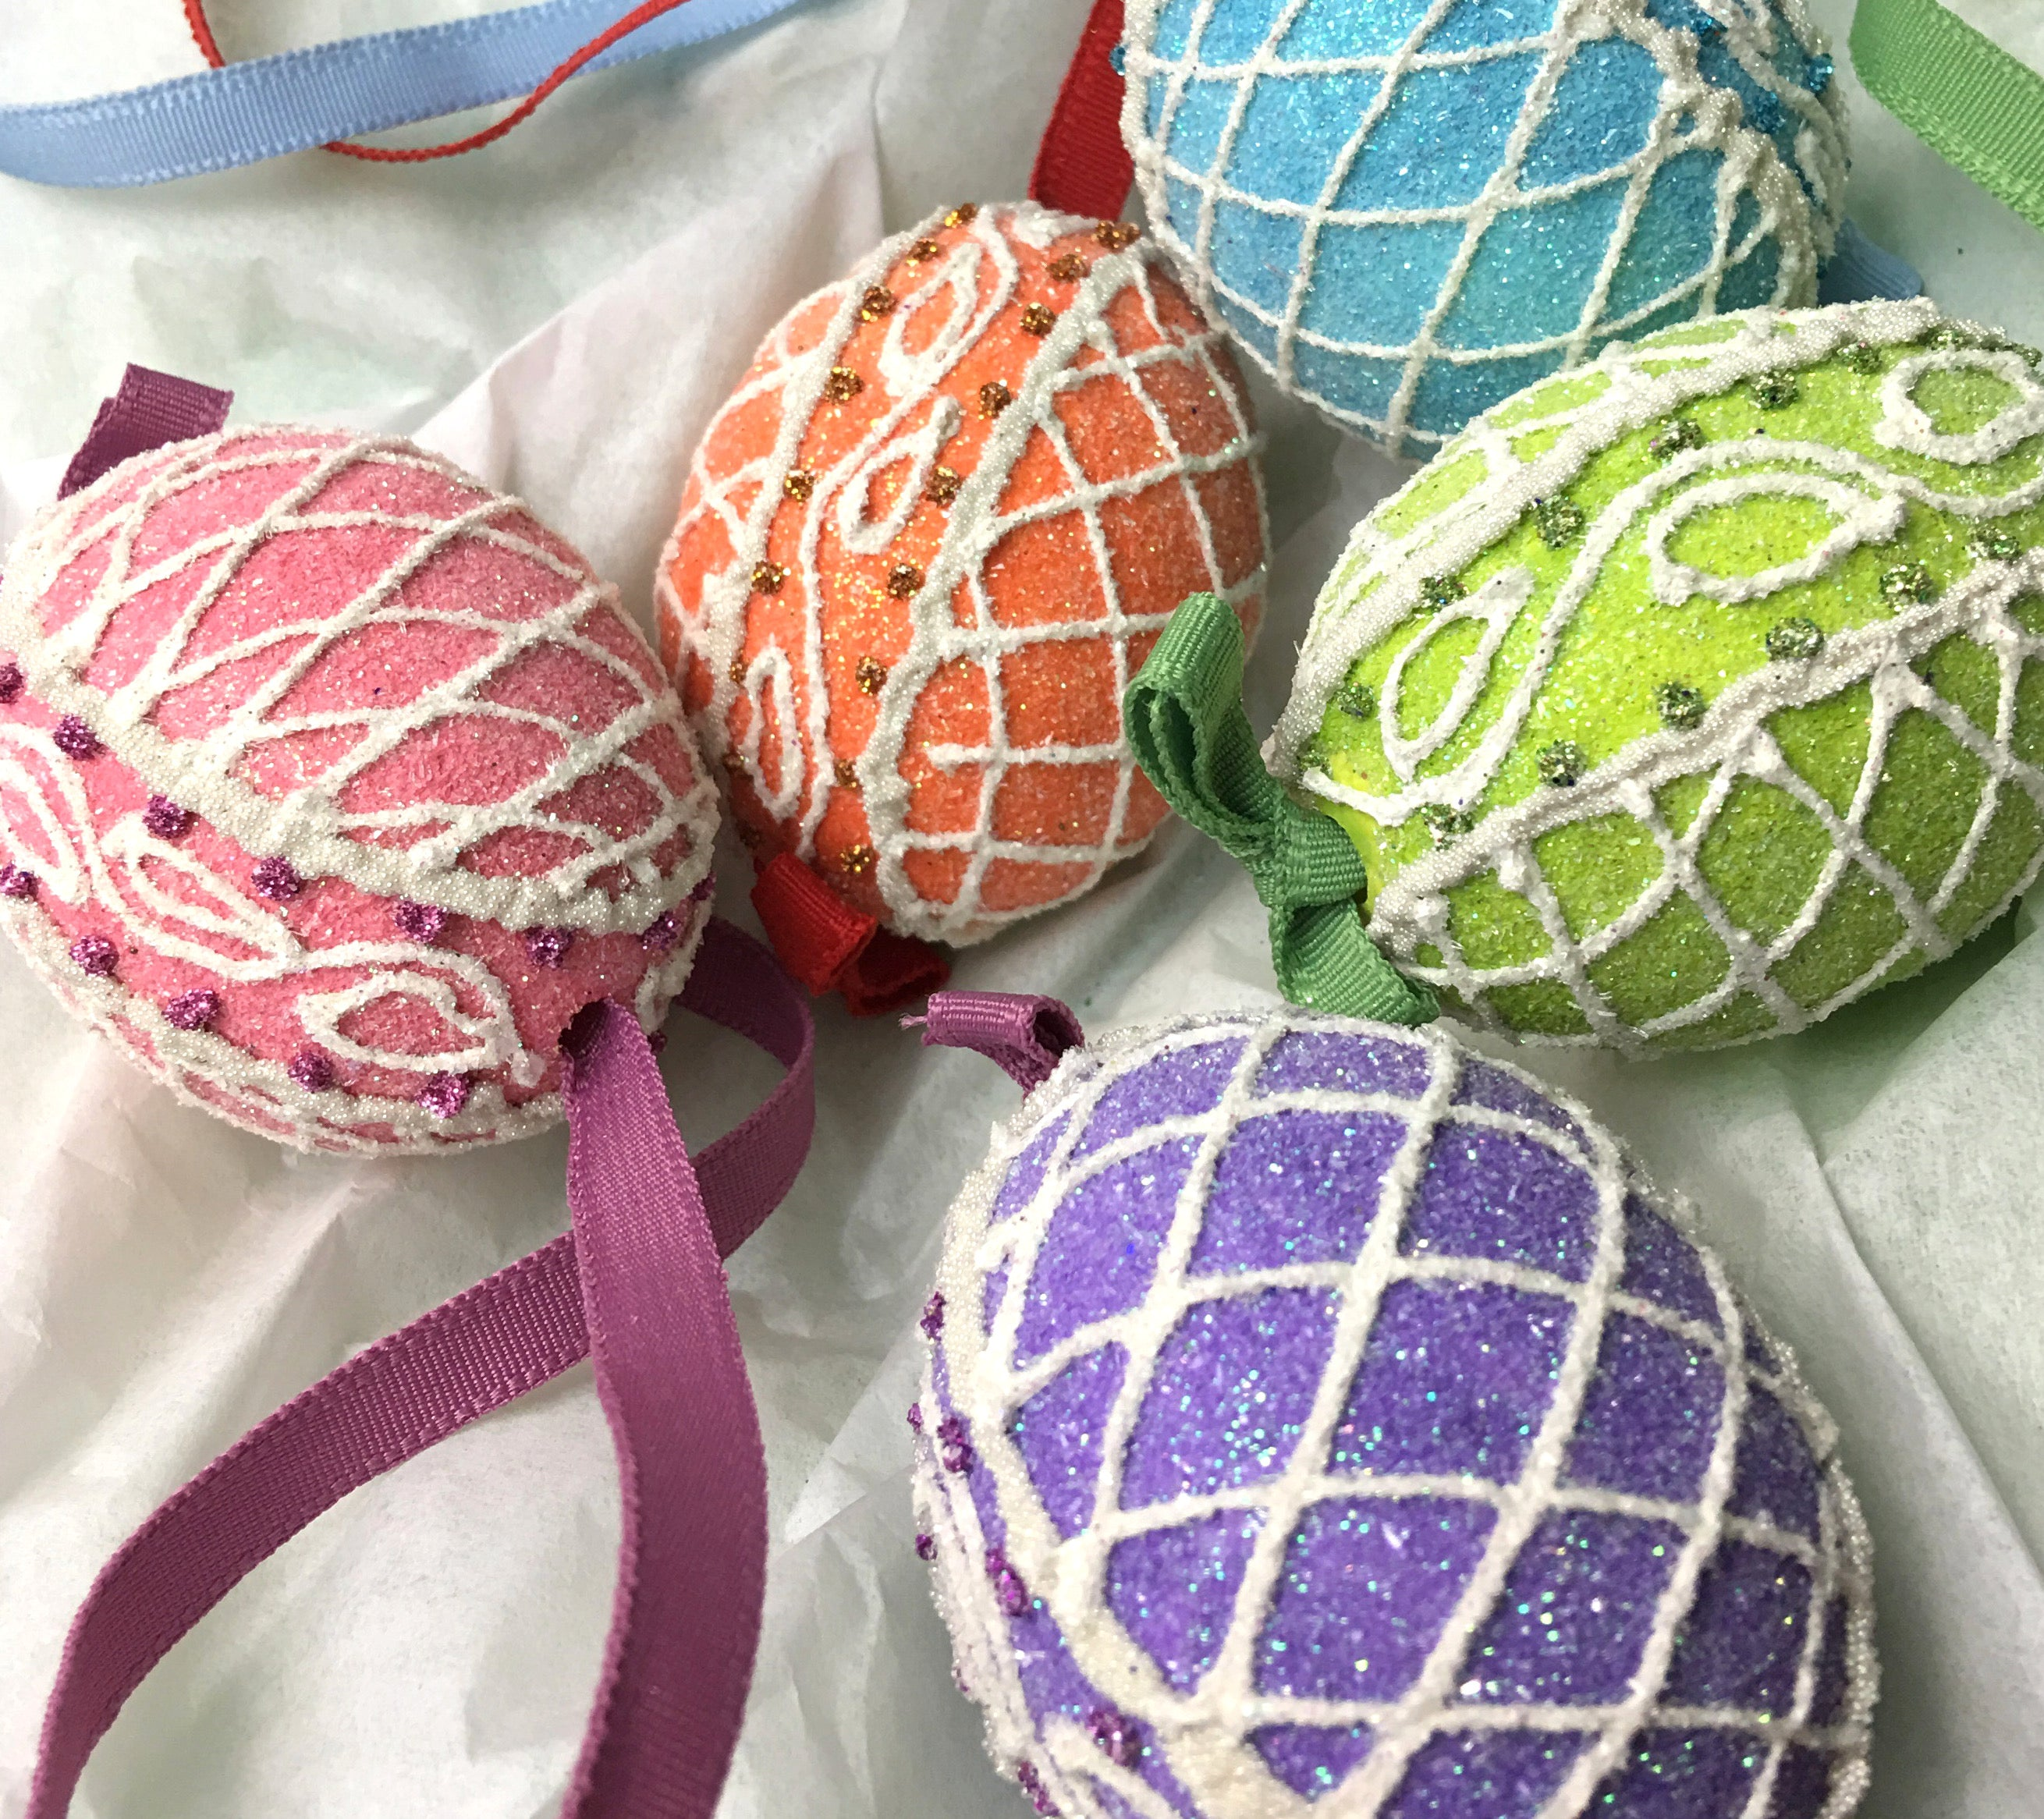 Easter Eggs decorated like Sugar Eggs